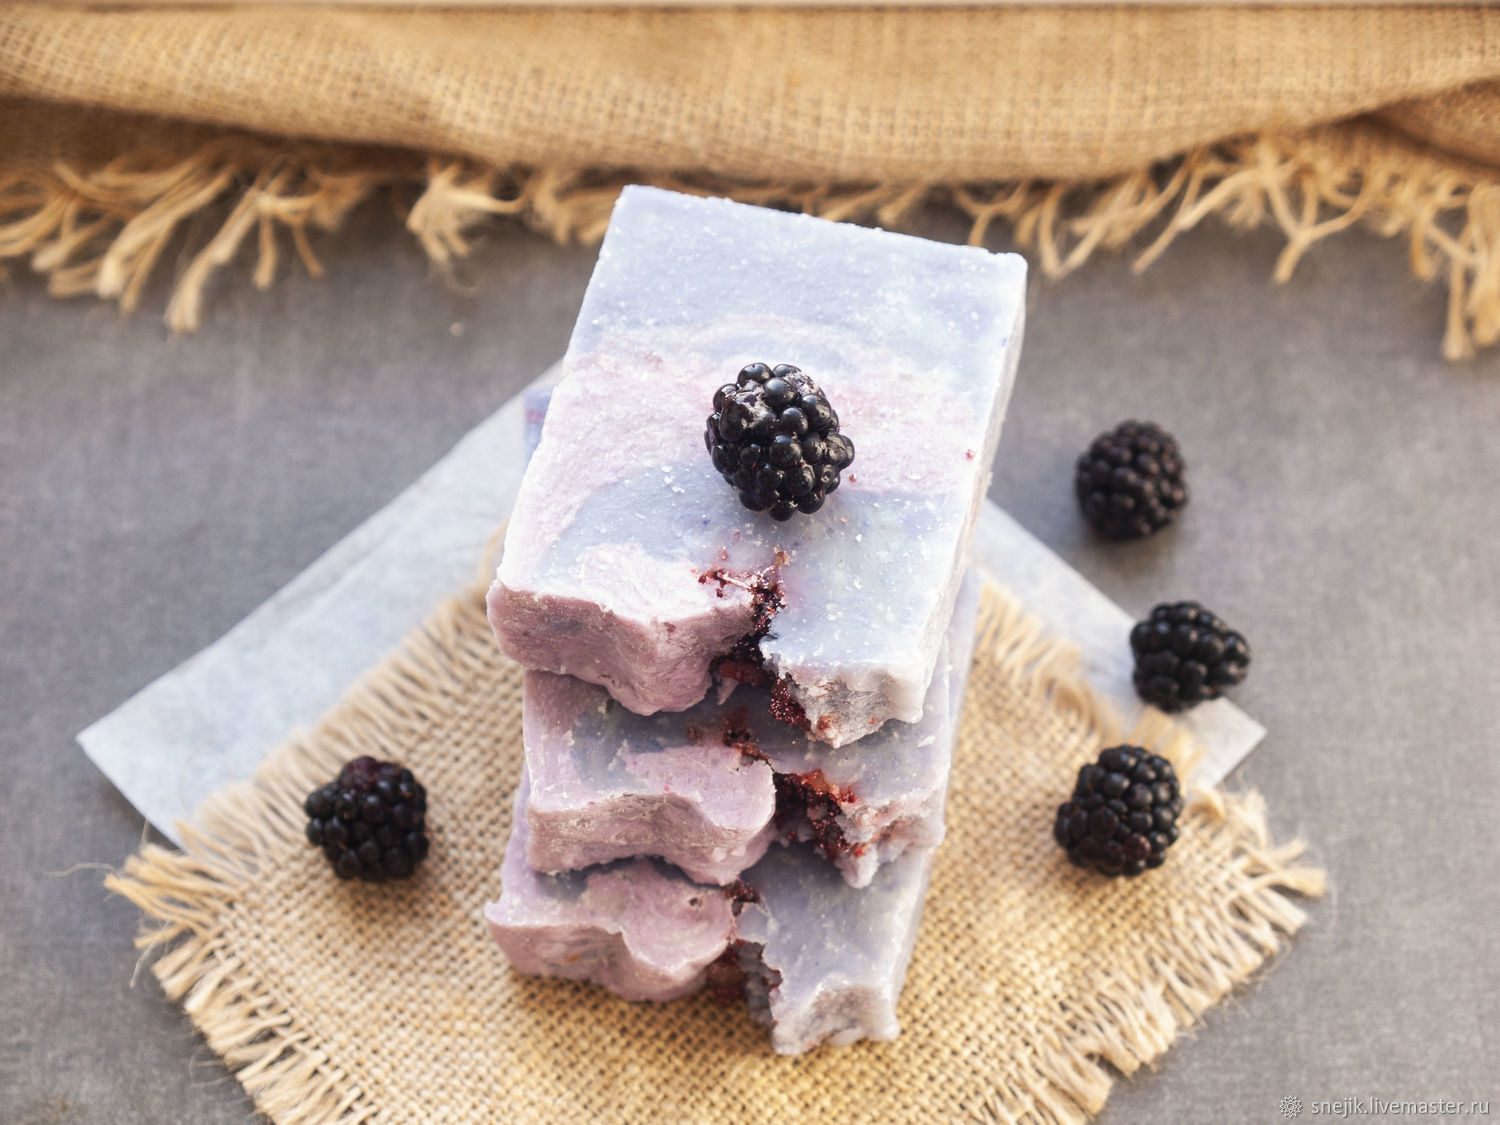 BLACKBERRY handmade soap, from scratch, Soap, Moscow,  Фото №1